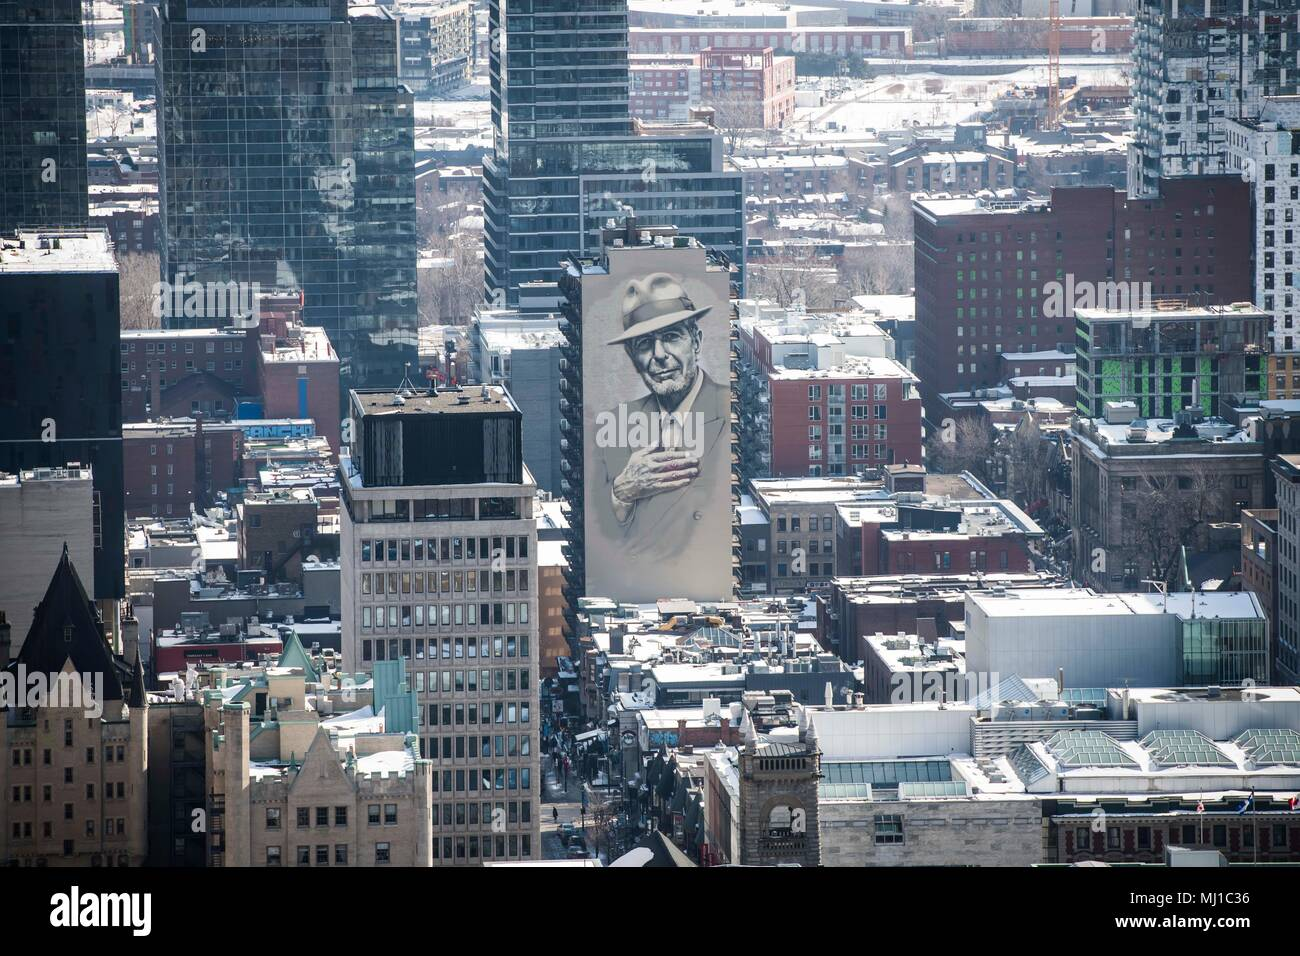 View From The Rooftops Of Montreal Of A Leonard Cohen Mural Painted